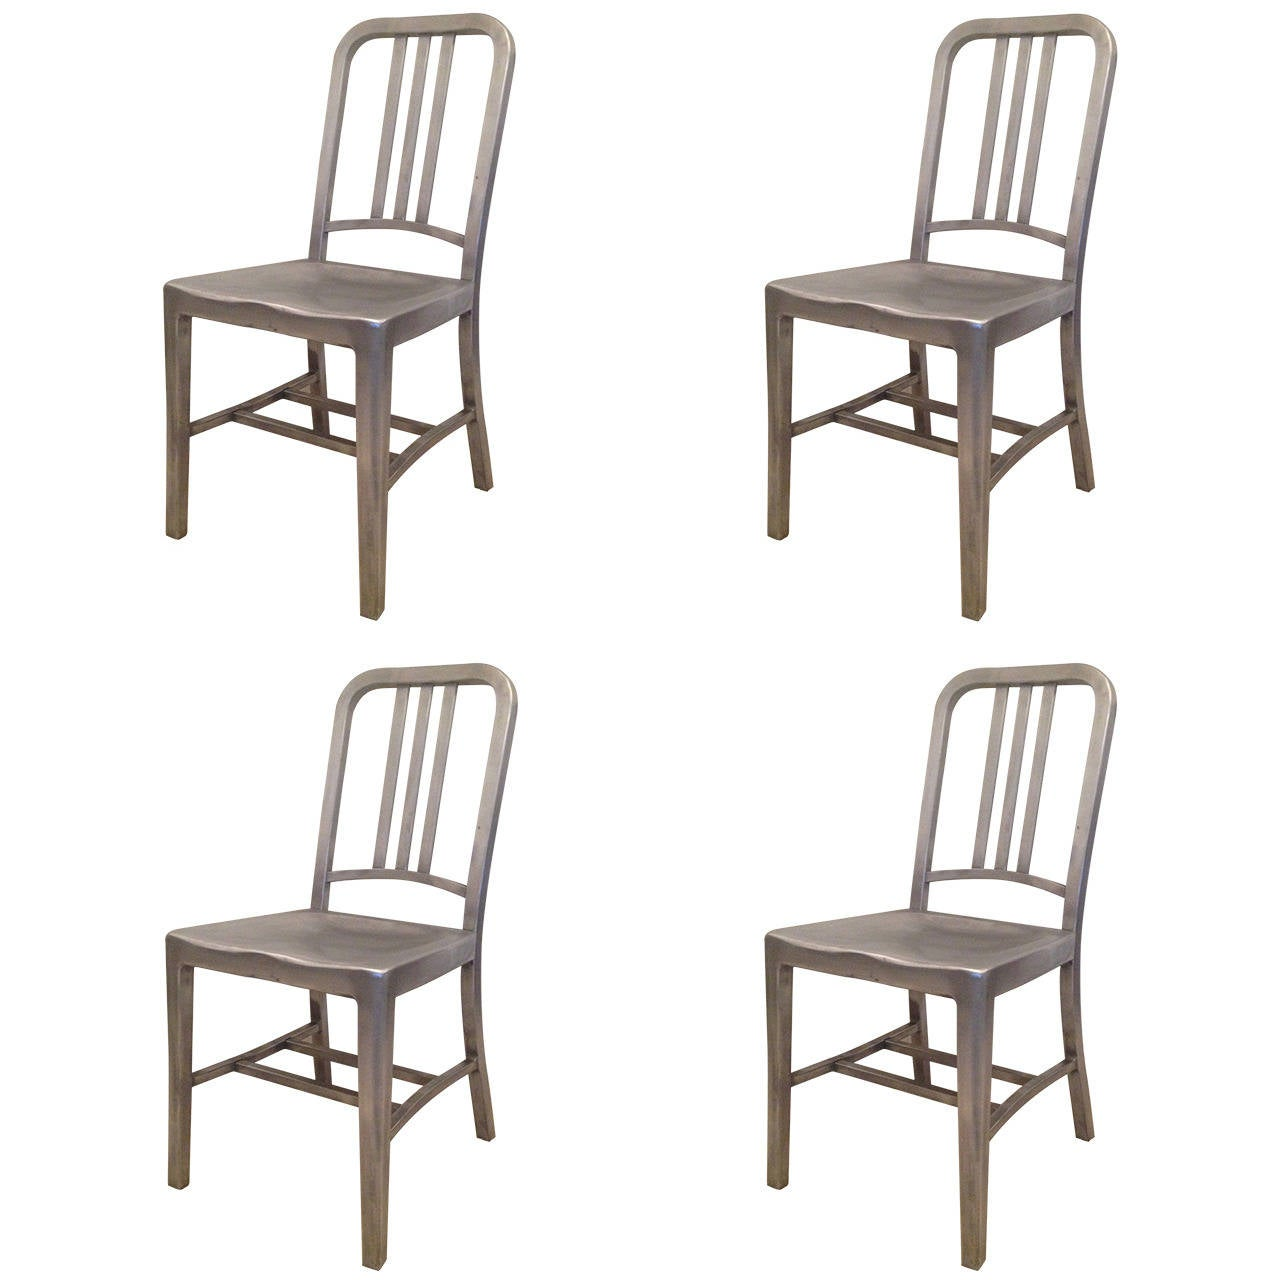 emeco set of four vintage navy chairs for sale at stdibs - emeco set of four vintage navy chairs